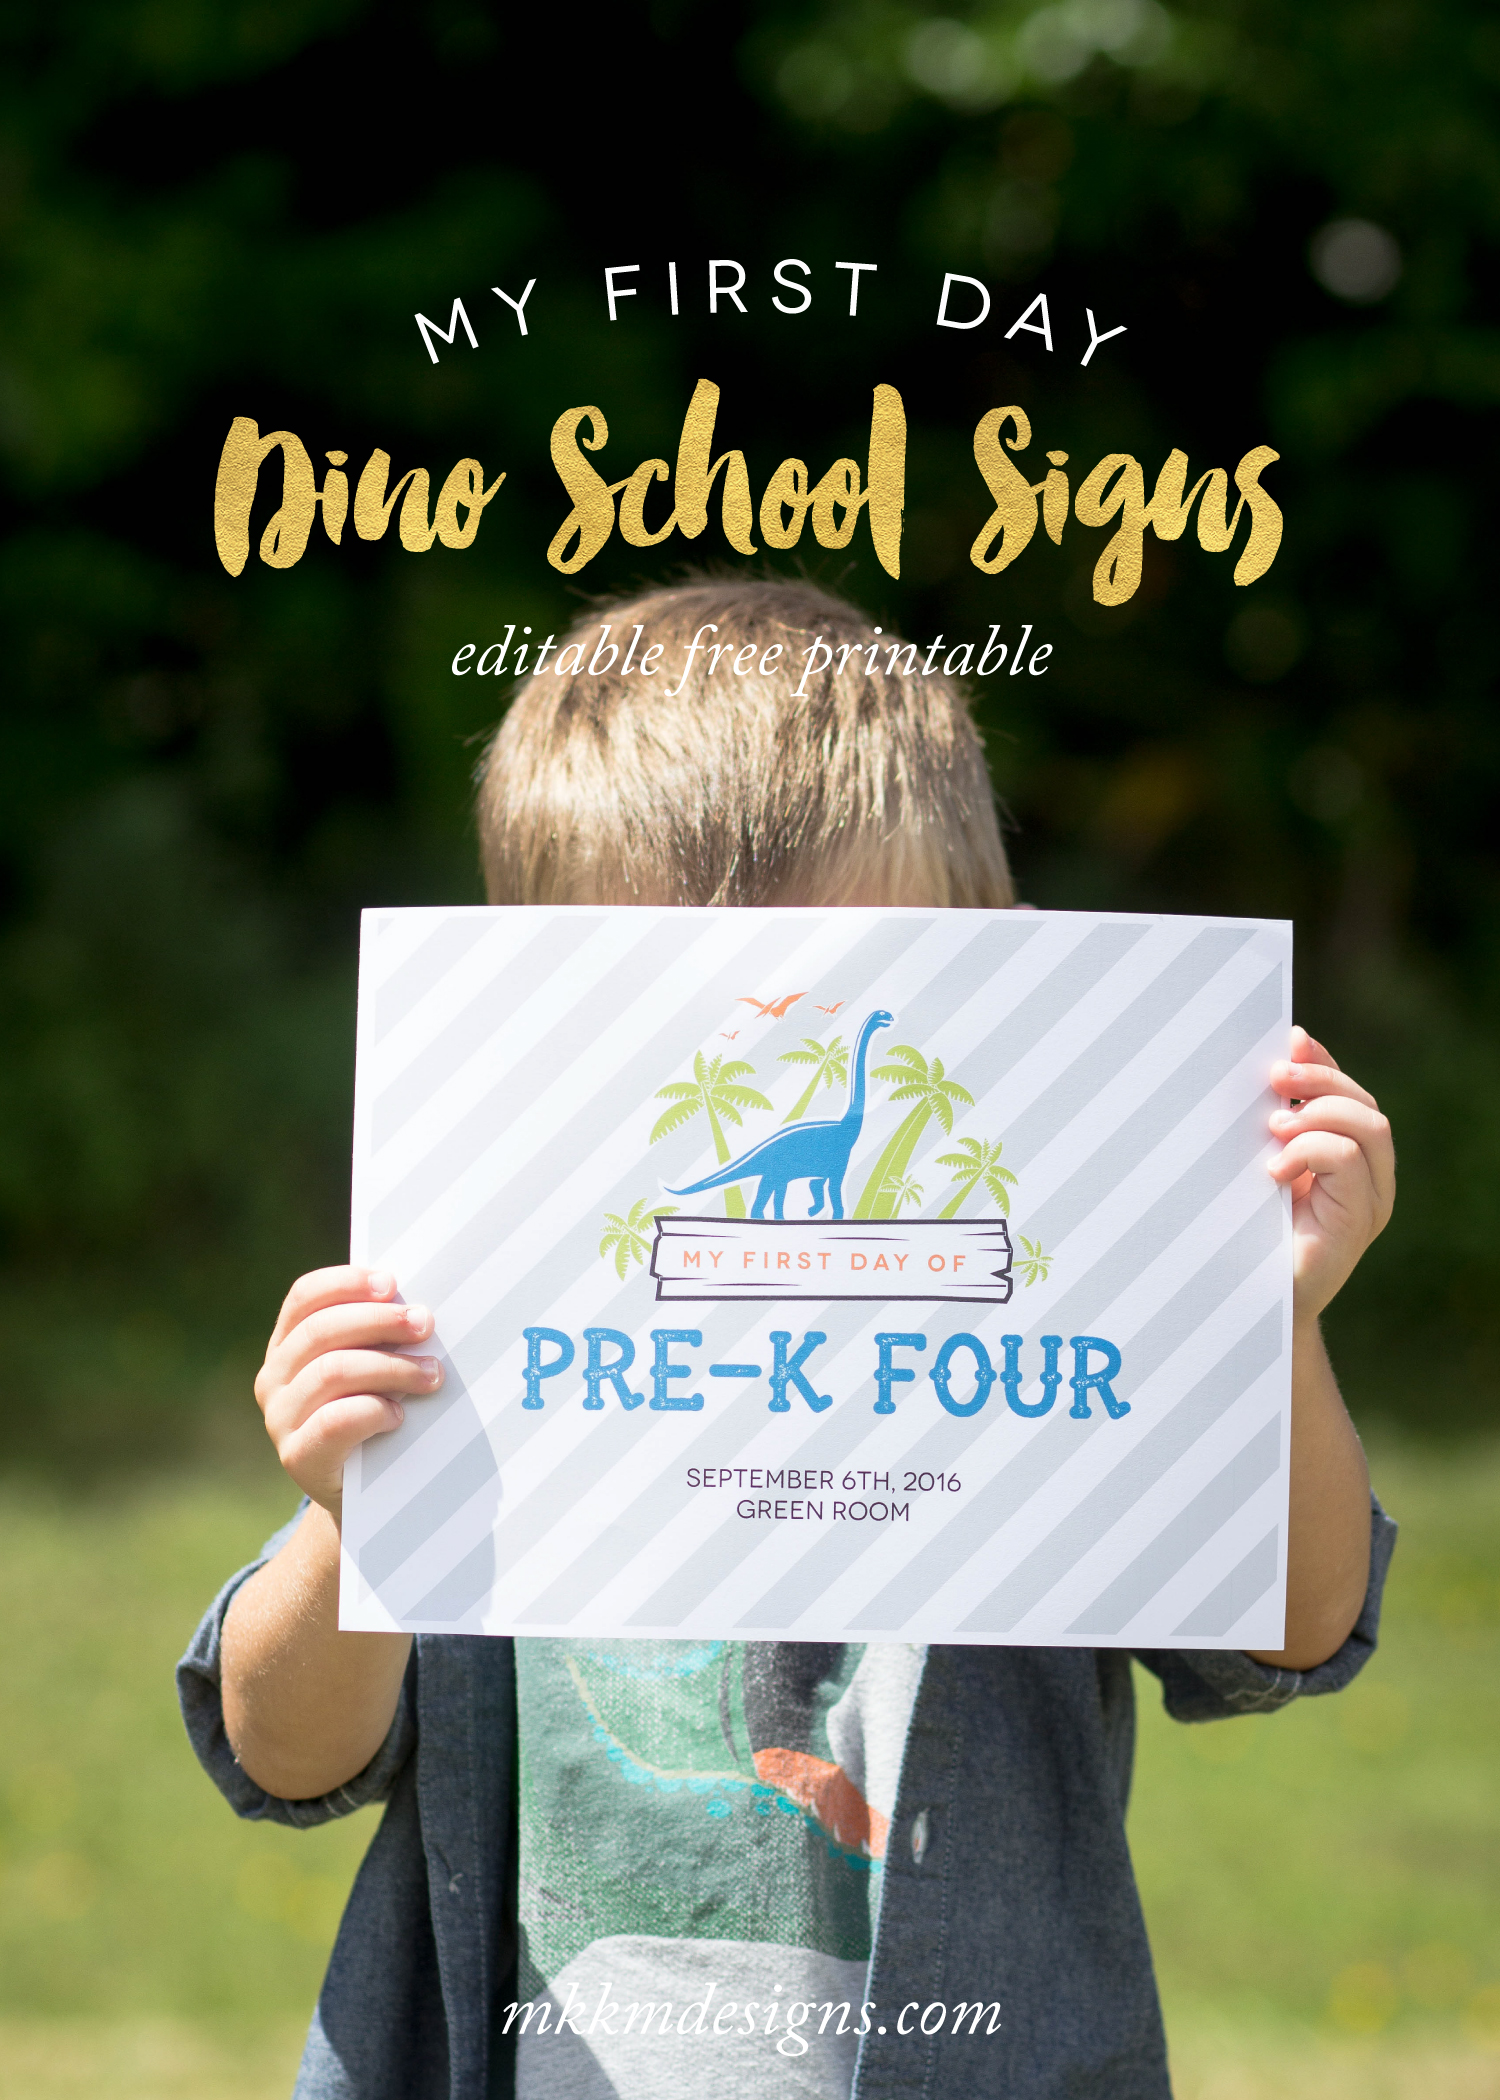 Printable First Day of School Sign in a fun dino theme by MKKM Designs